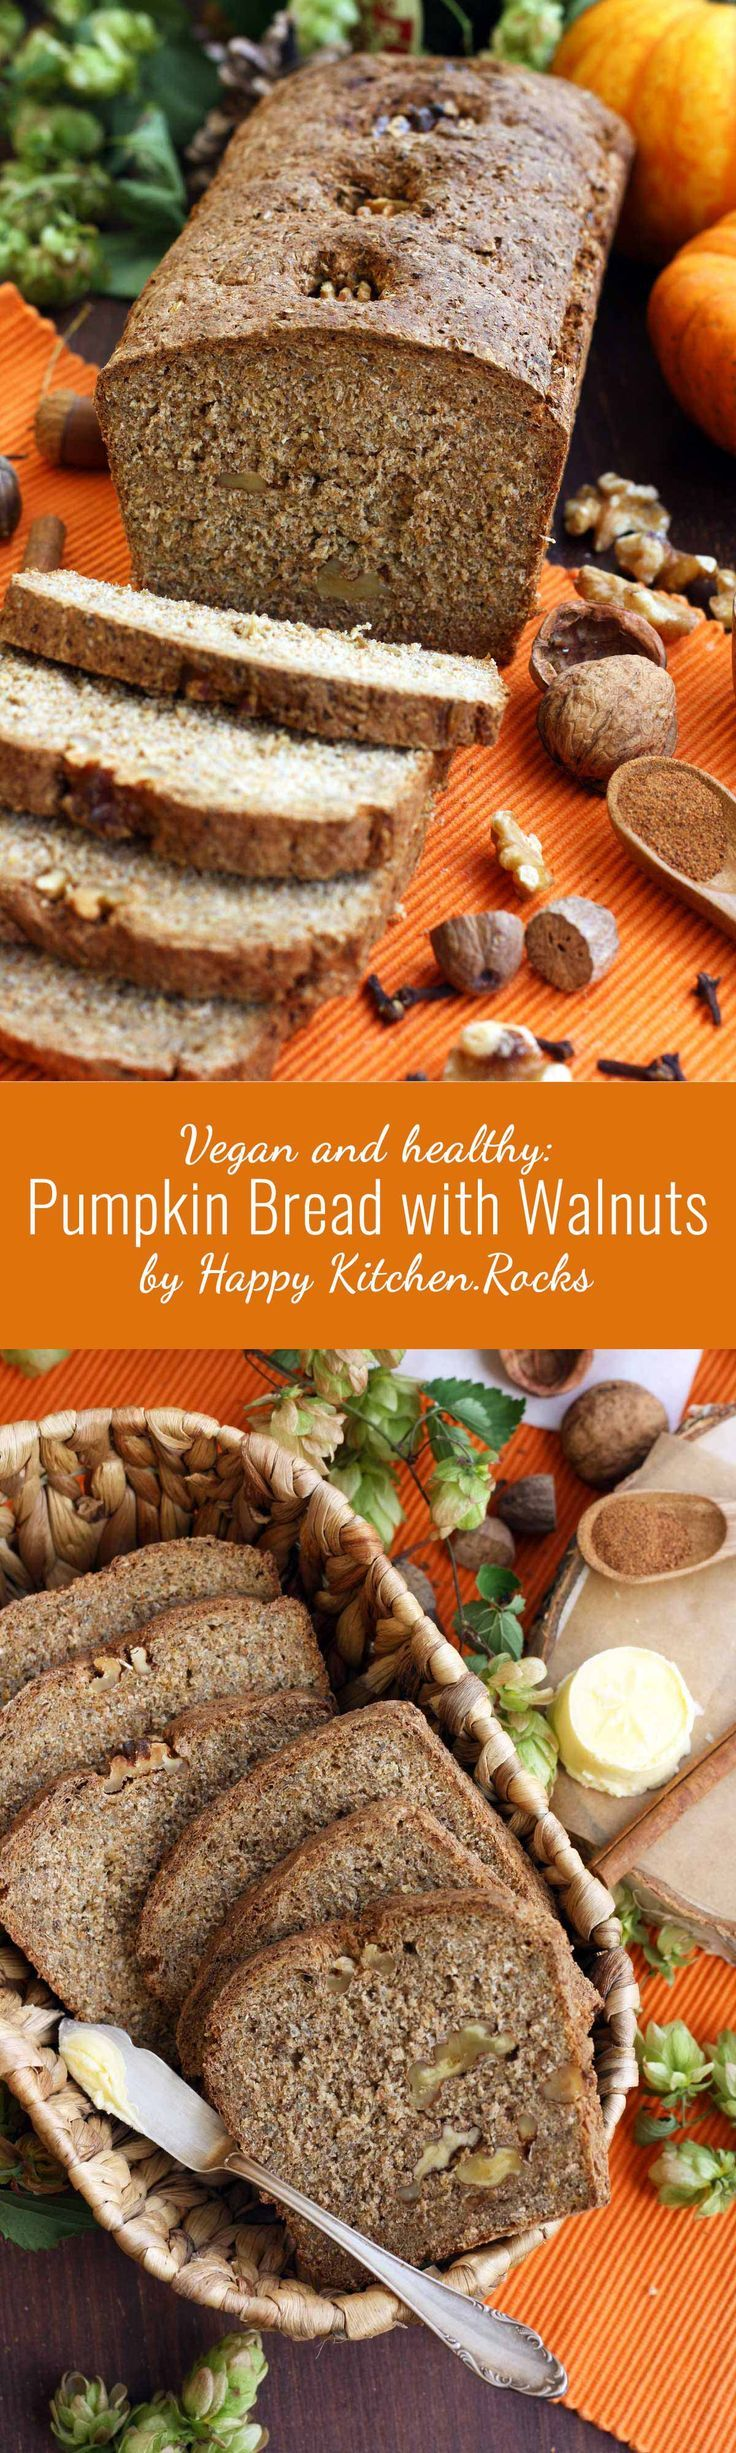 Easy and Healthy Pumpkin Bread recipe, made with whole grain flour, chia seeds, maple syrup, walnuts, beer and malt. Delicious, vegan and packed with nutrients!